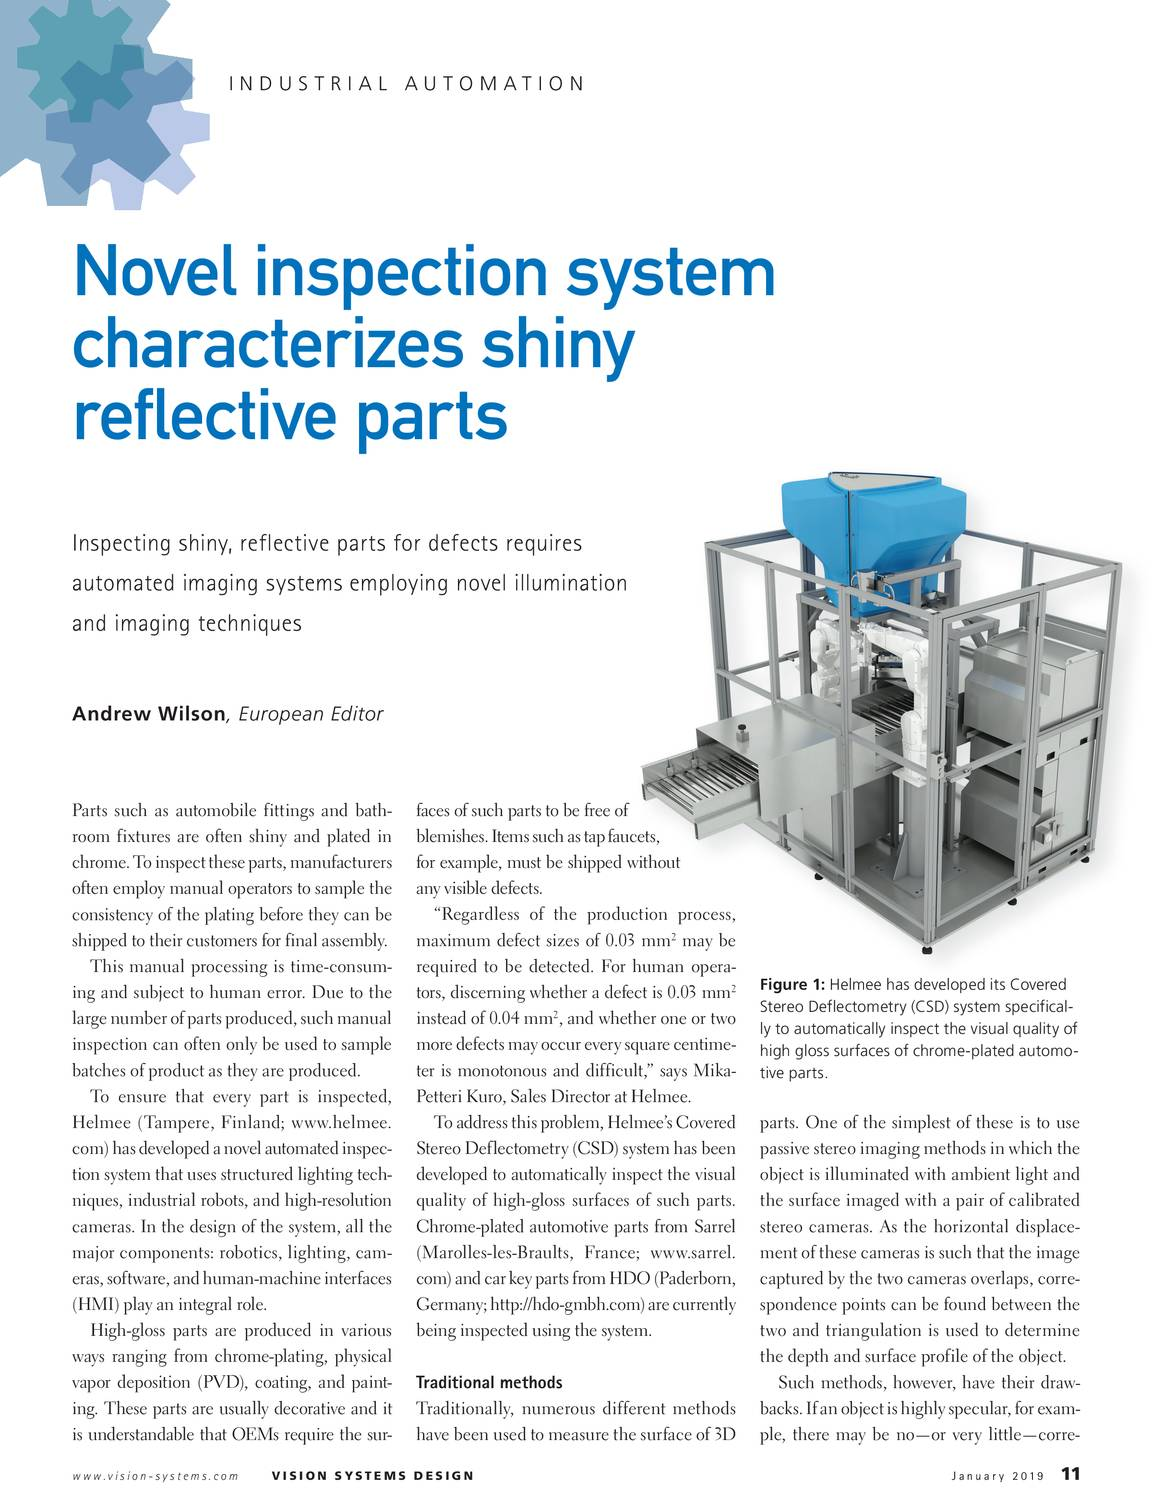 Vision Systems - January 2019 - page 11